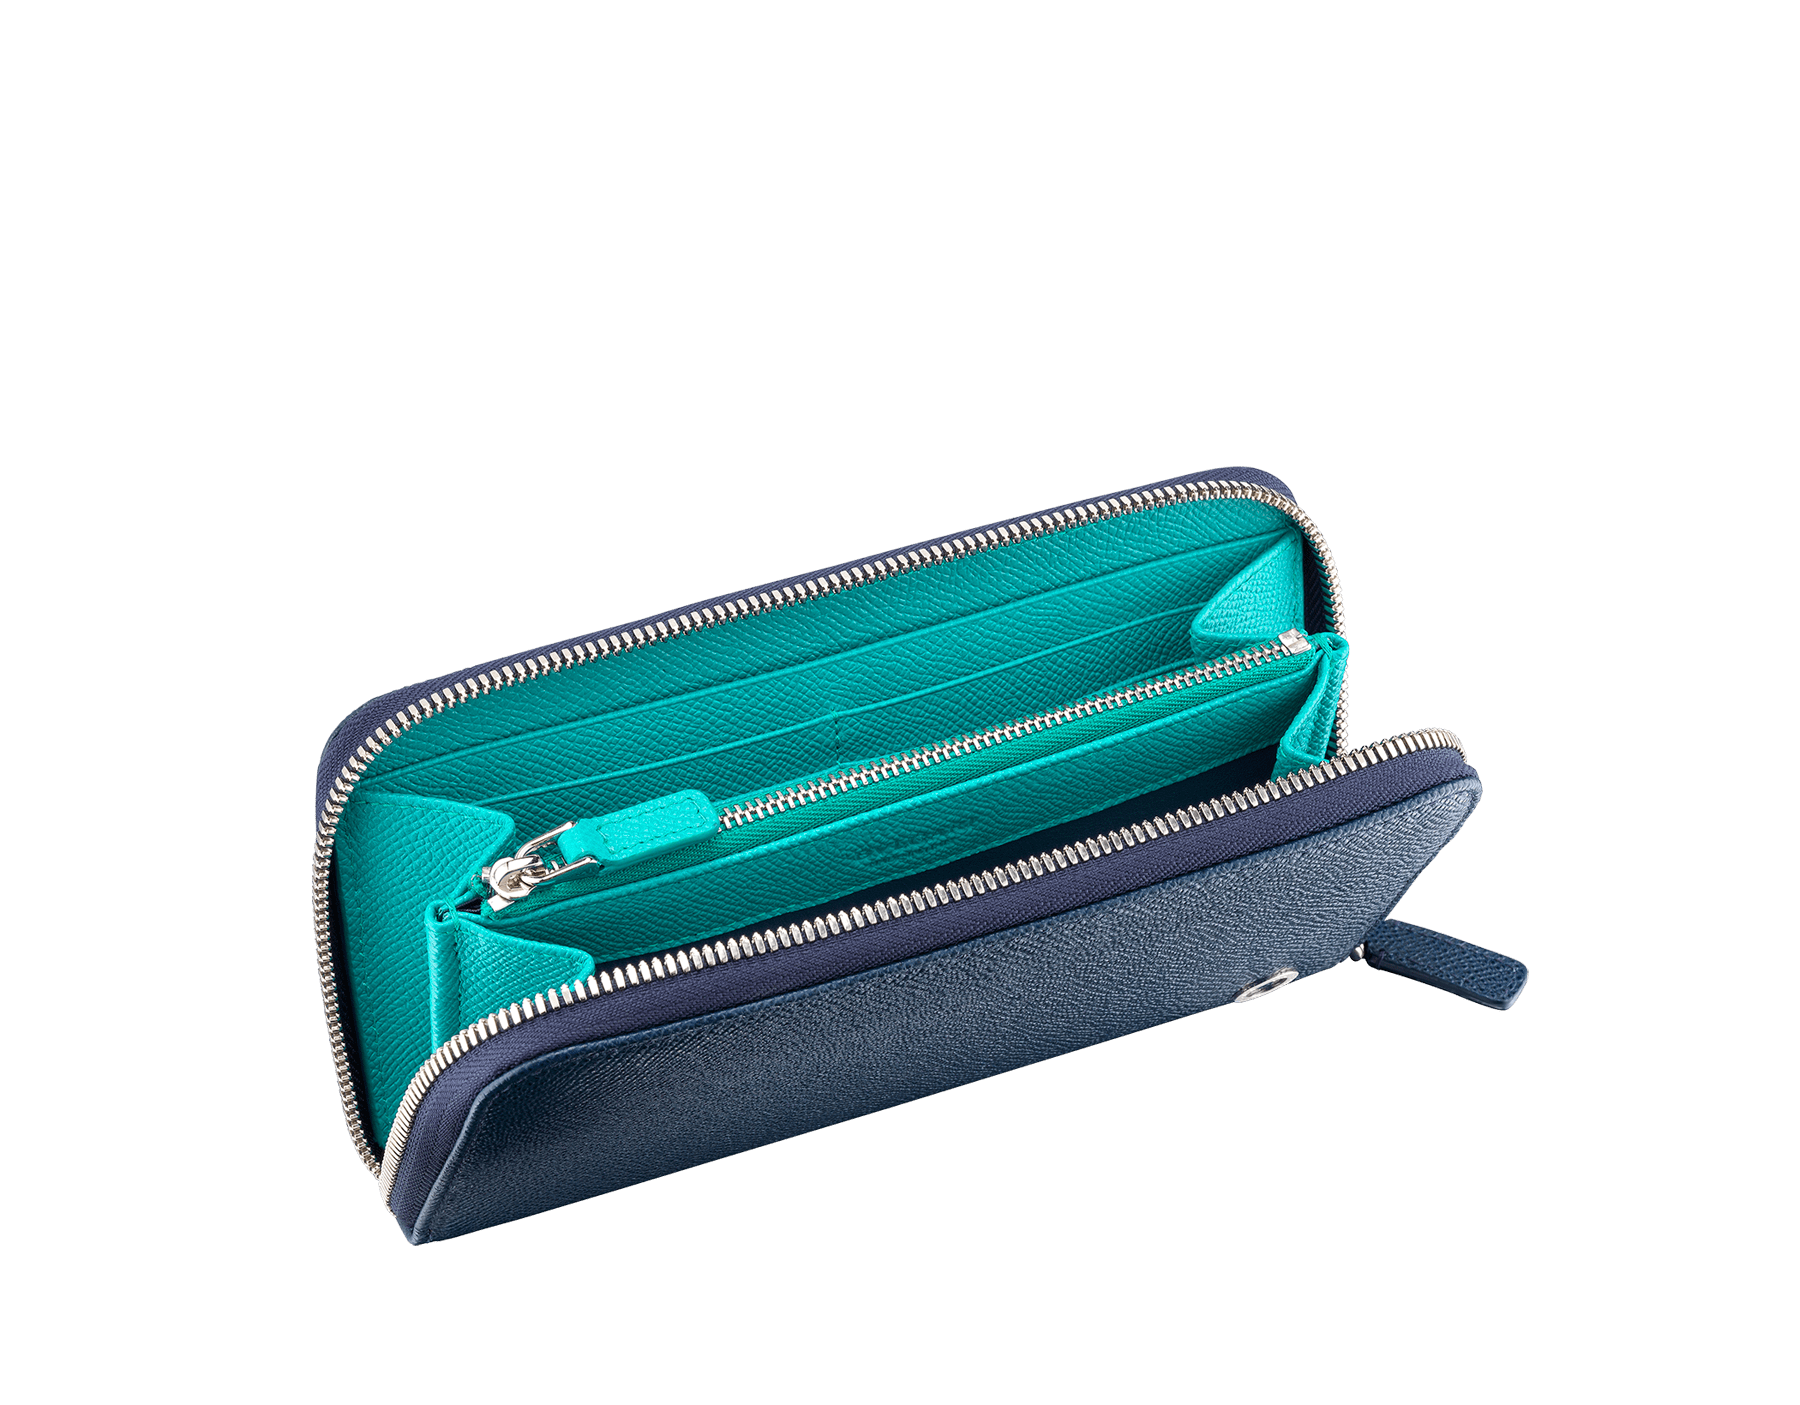 BVLGARI BVLGARI man zipped wallet in denim sapphire and tropical tourquoise grain calf leather and black nappa lining. Iconic logo décor in palladium plated brass. 288254 image 2